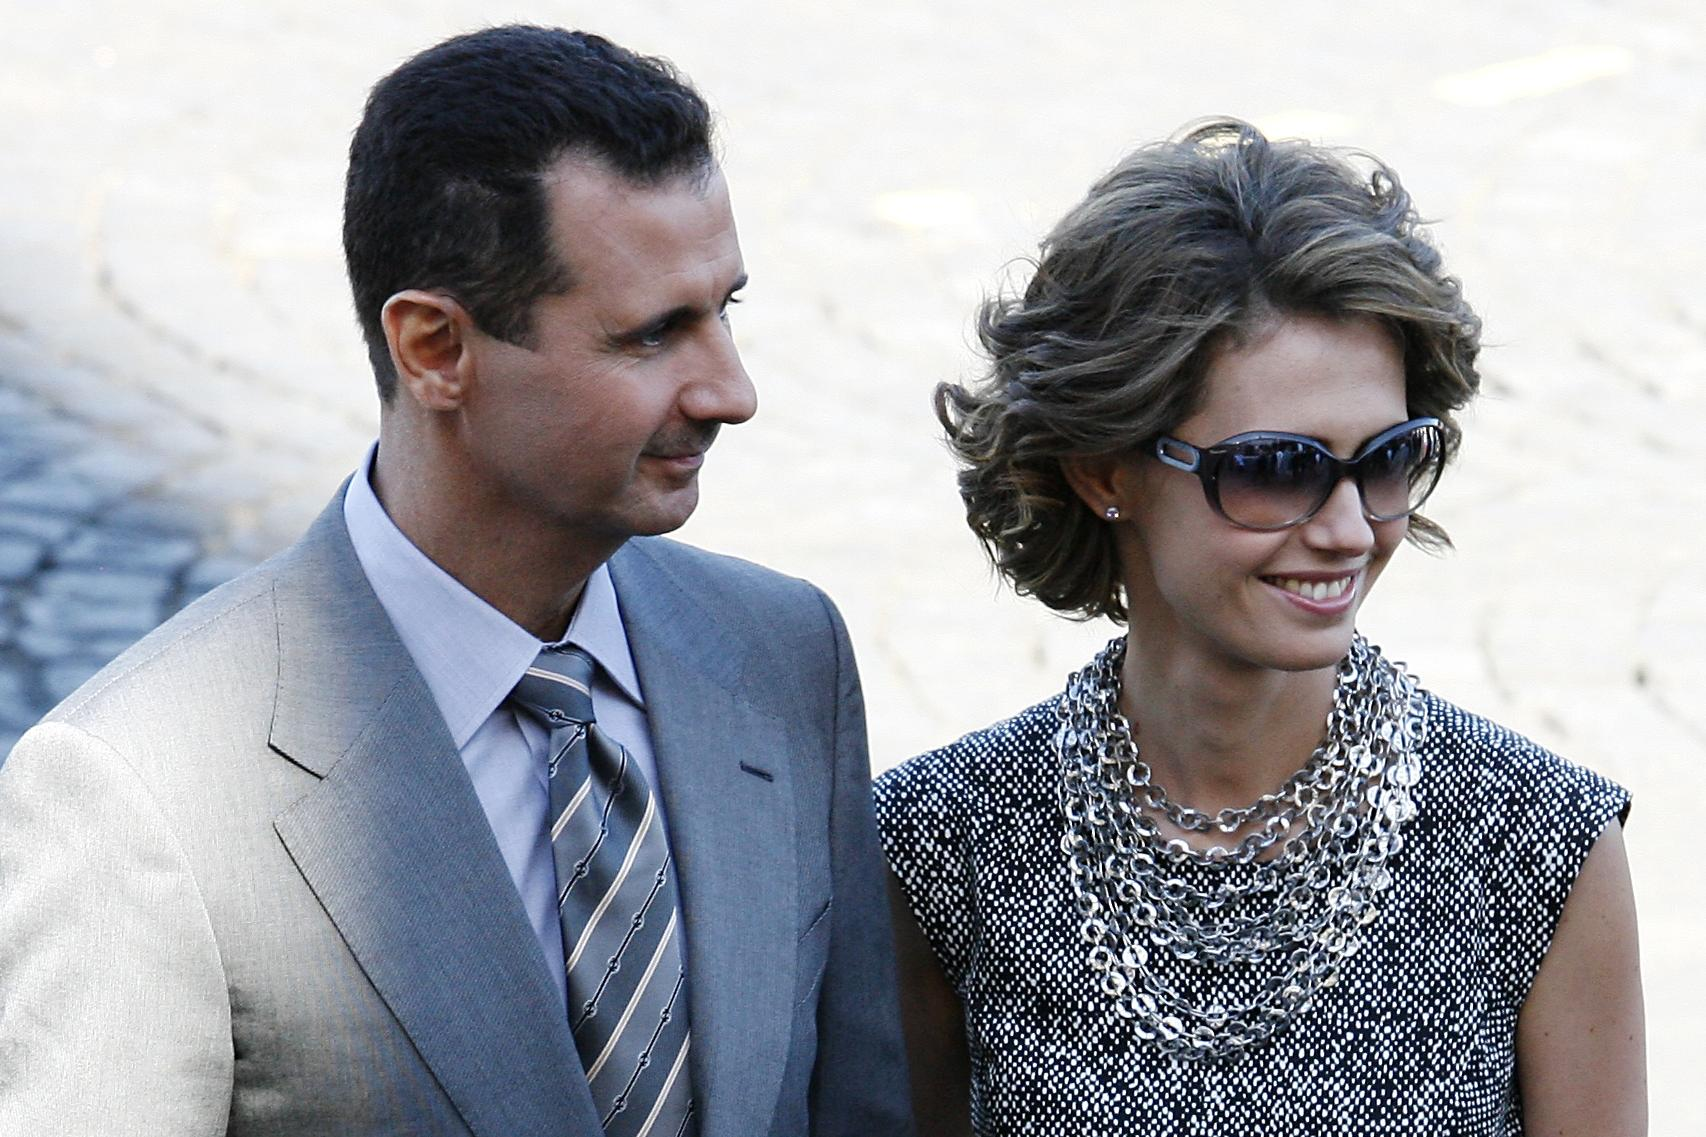 Syria's President Assad, his wife test positive for COVID-19